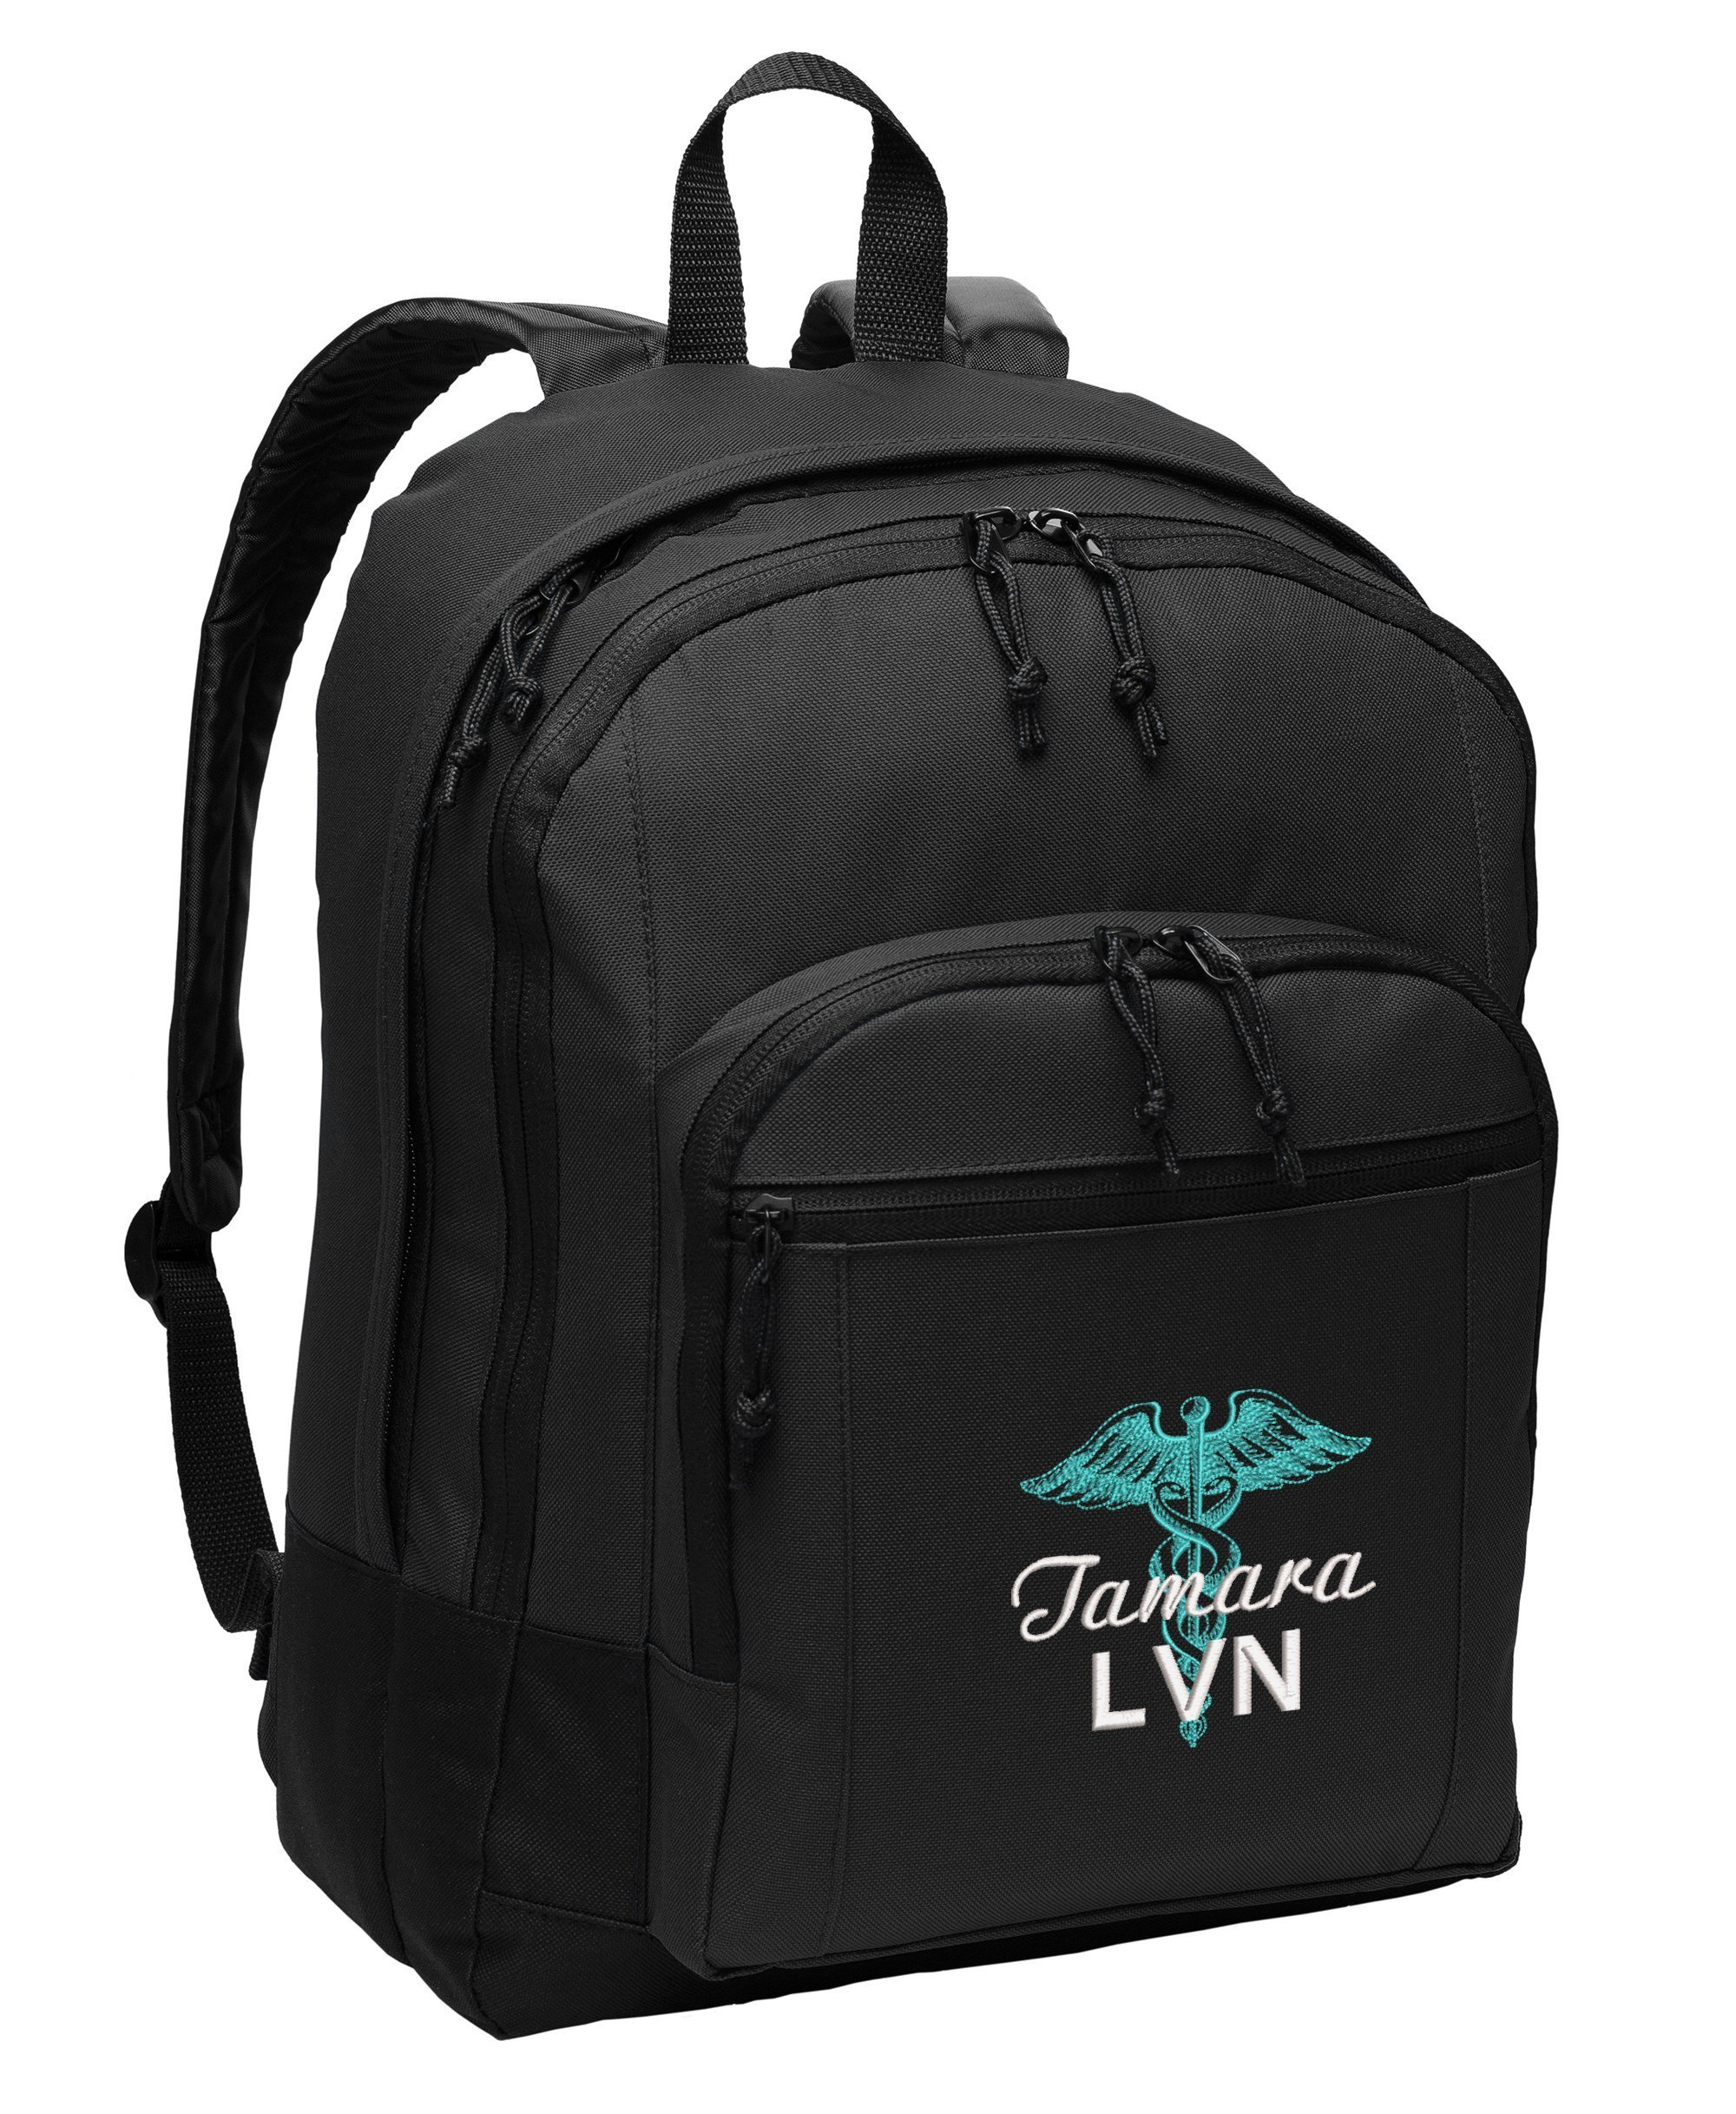 Caduceus, RN, LVN,CNA, MA, Personalized Embroidered Backpack